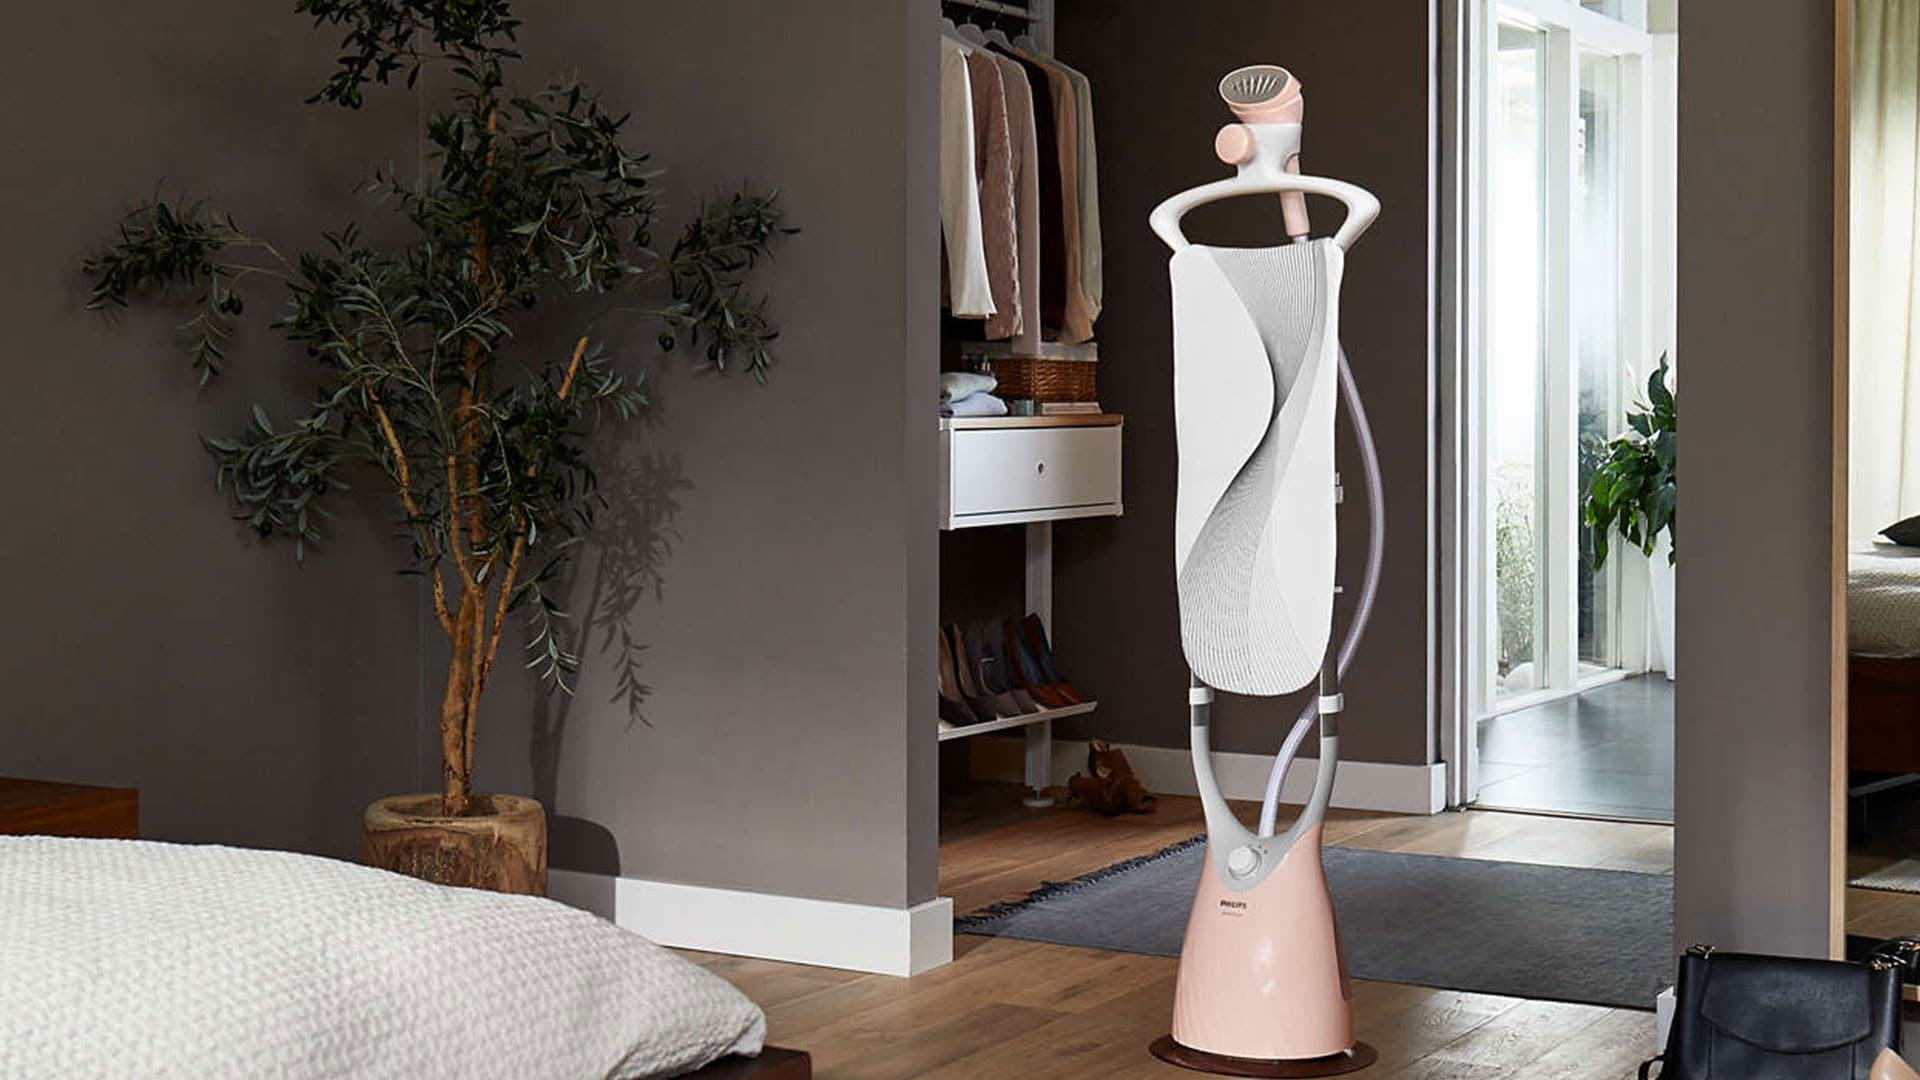 effortless-dewrinkling-from-top-to-bottom-with-the-philips-comforttouch-garment-steamer